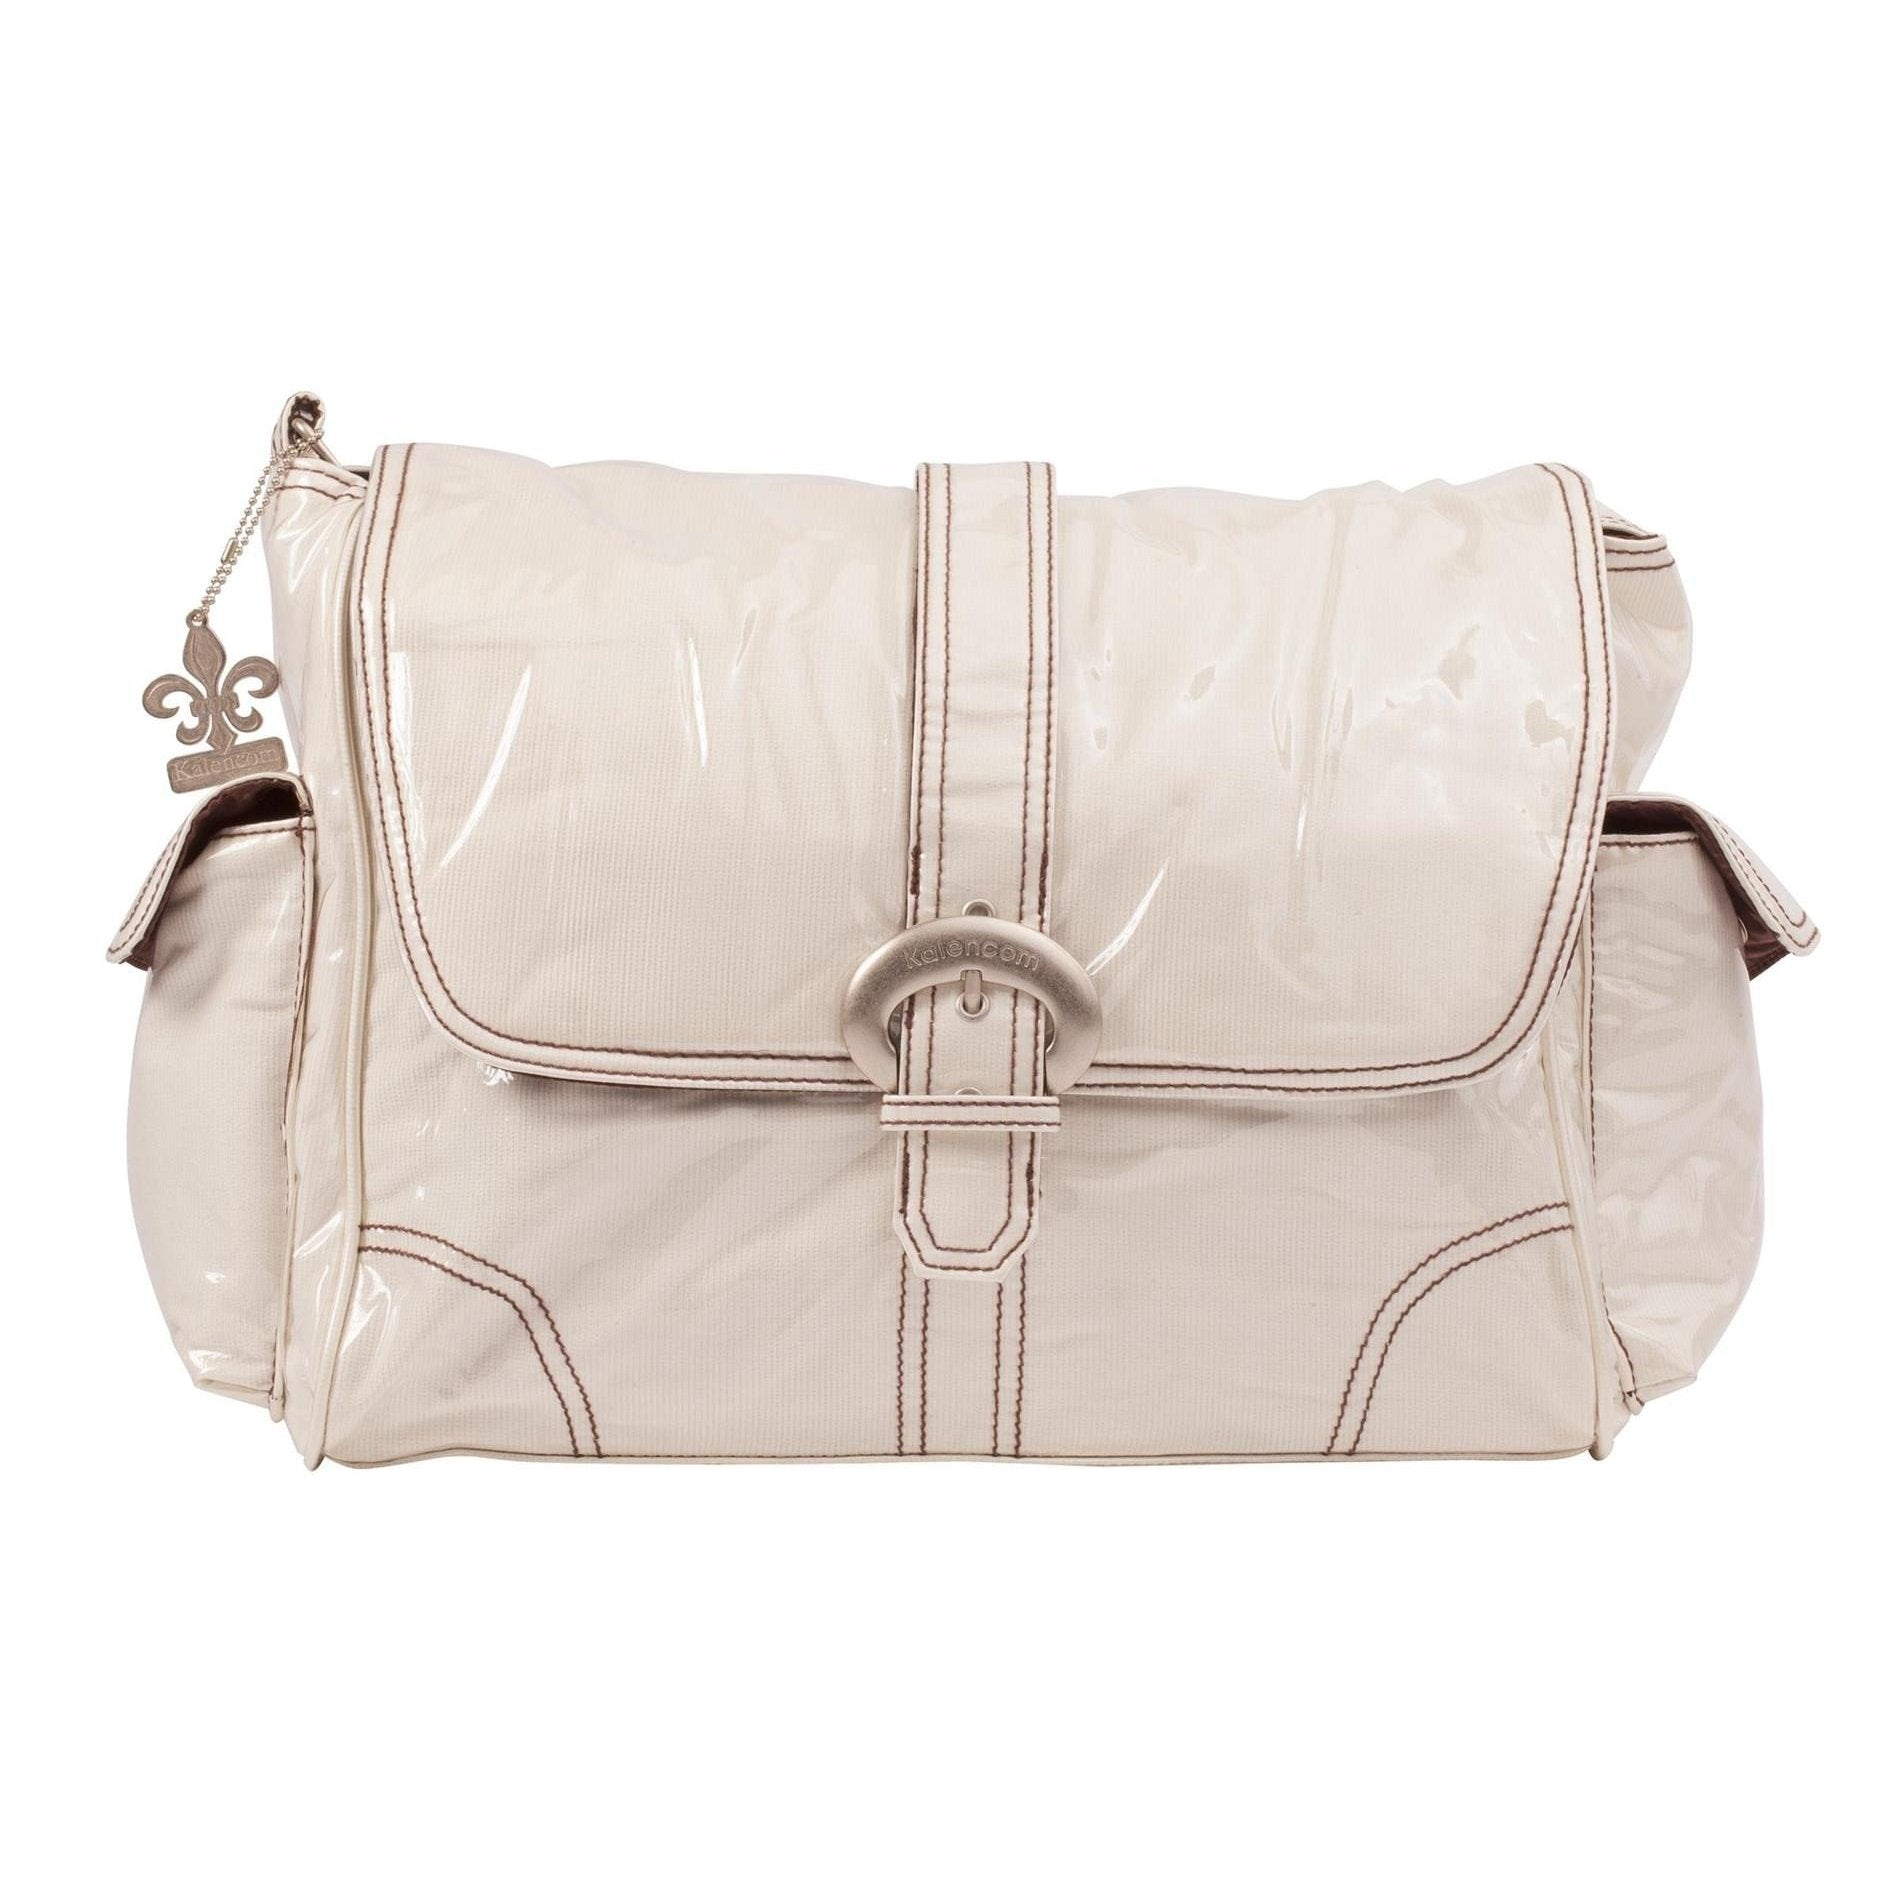 Cream Corduroy Laminated Buckle Diaper Bag | Style 2960 - Kalencom-Diaper Bags-Default-Jack and Jill Boutique